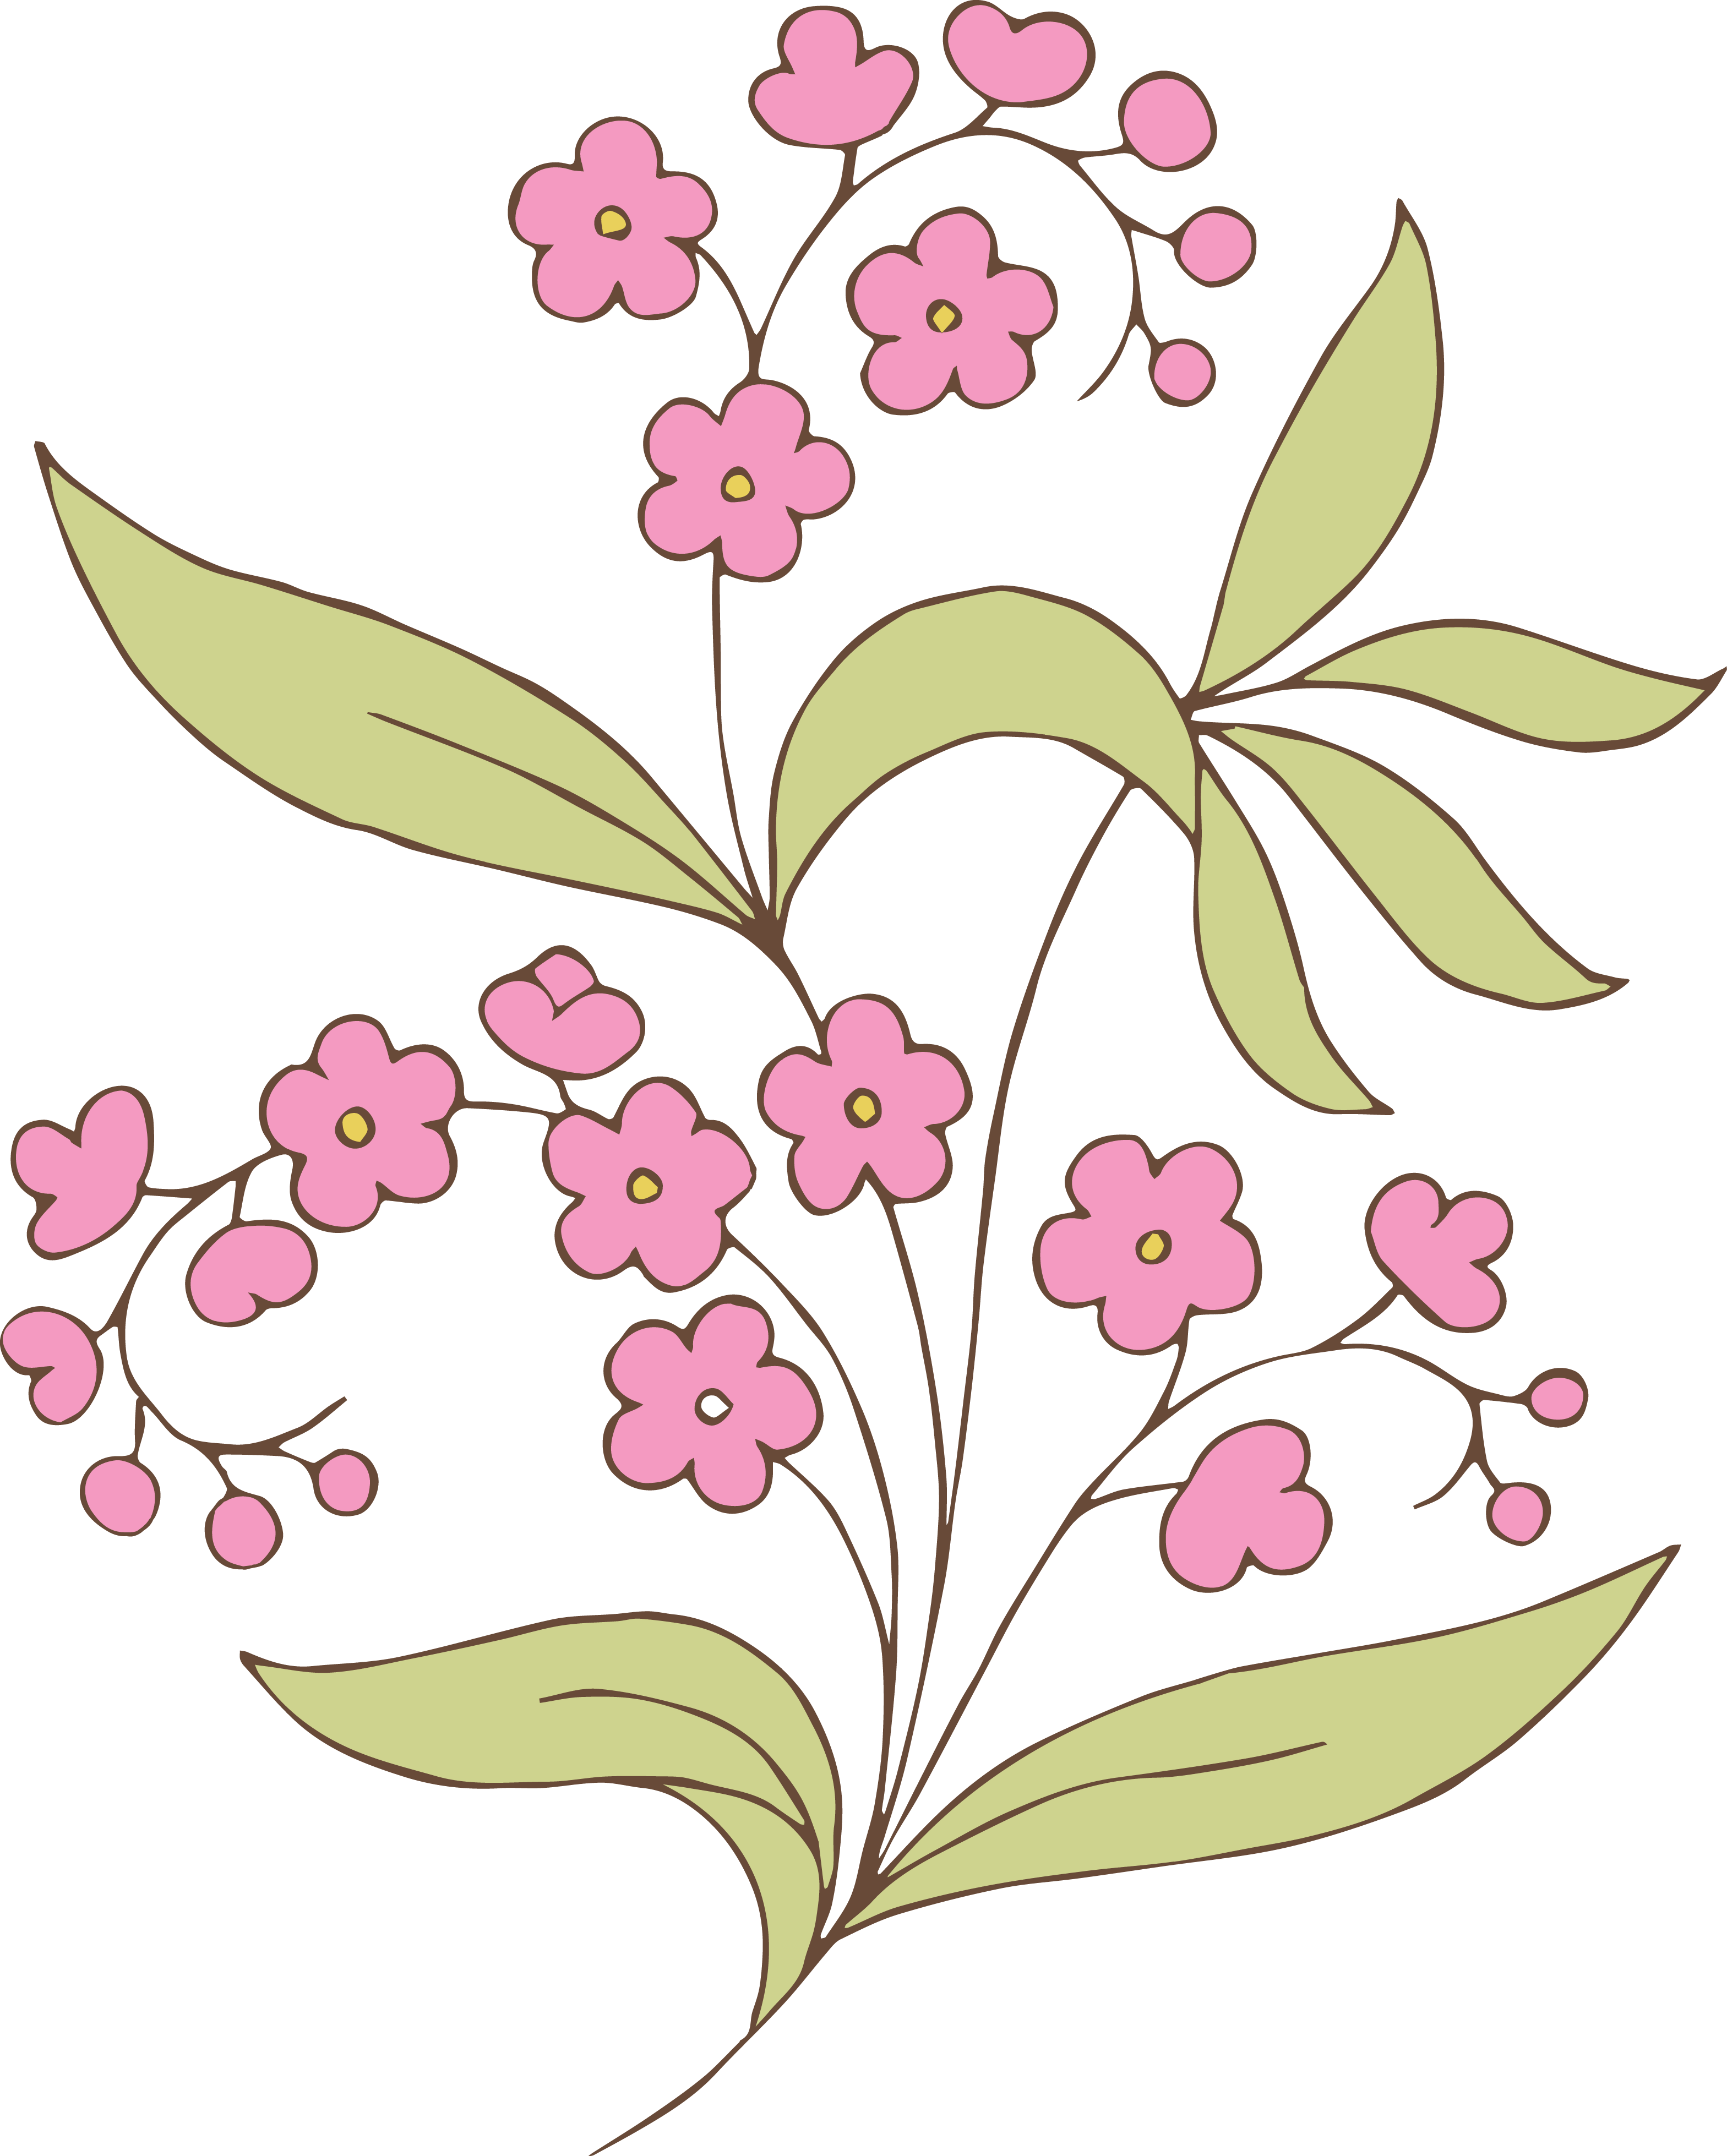 Vintage Illustration - Floral & Fruit Swag | Oh So Nifty Vintage ...: www.clipartbest.com/clipart-RcAyEzgei